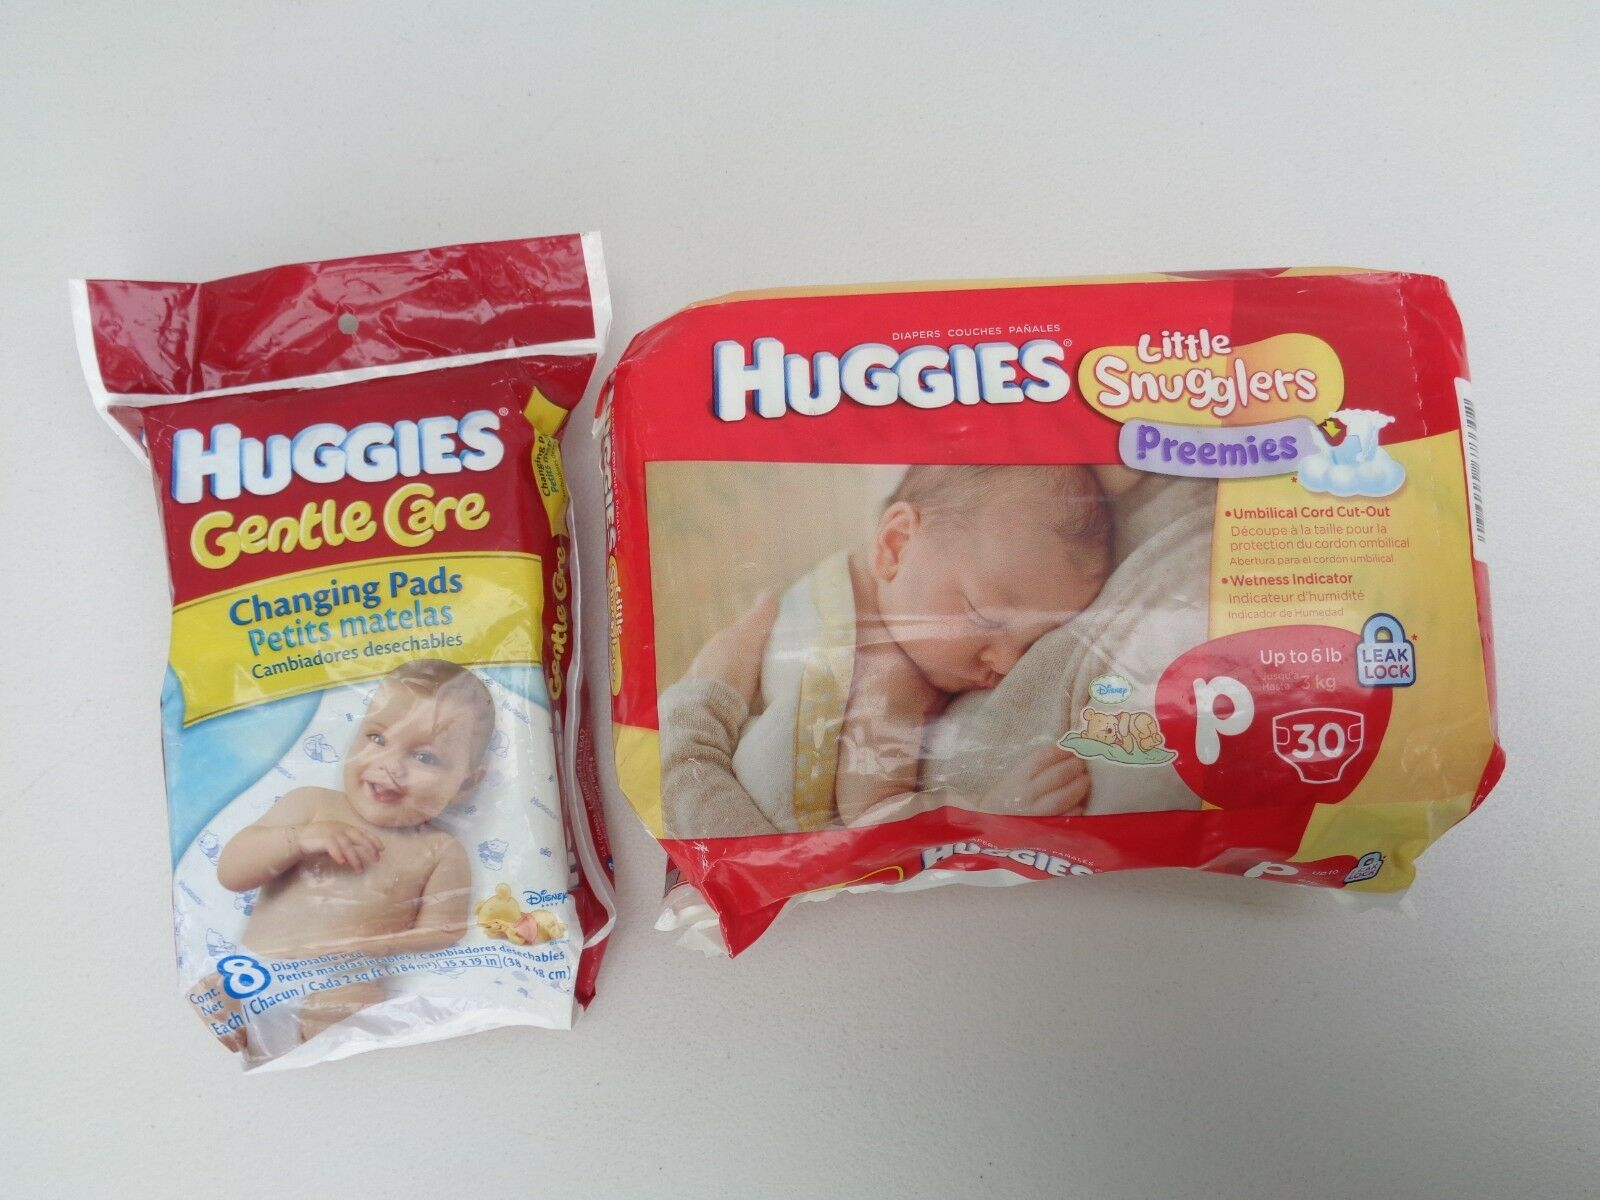 Huggies Gentle Care 8 Disposable Changing Pads~Little Snuggl